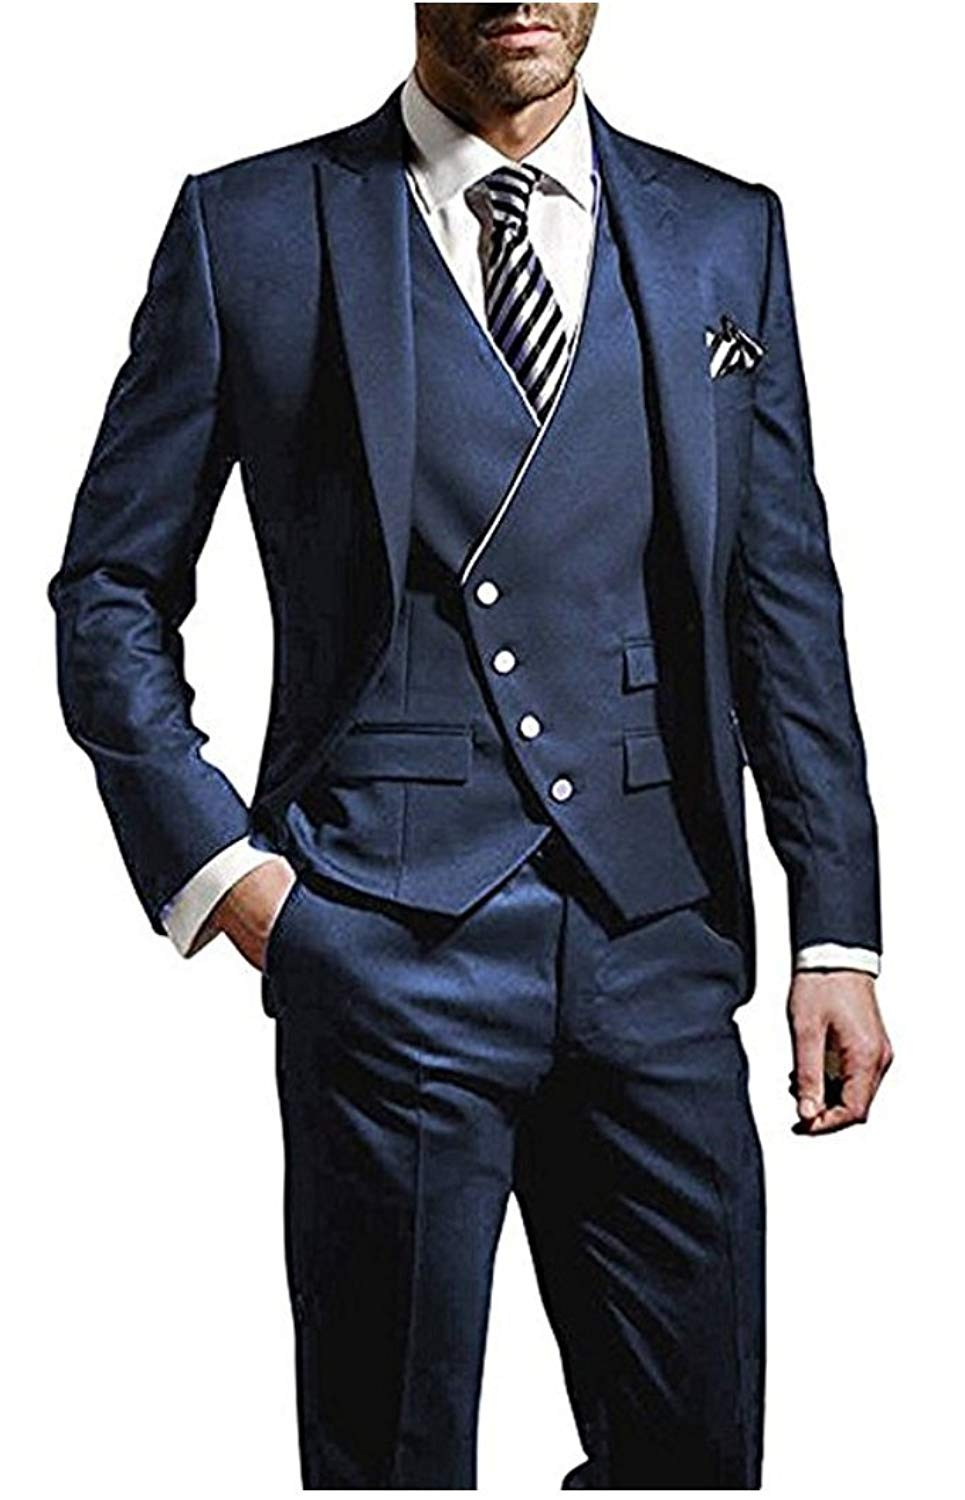 Suxiaoxi Mens Modern 3 Pieces Groomsman Suits Tuxedo Business Suits